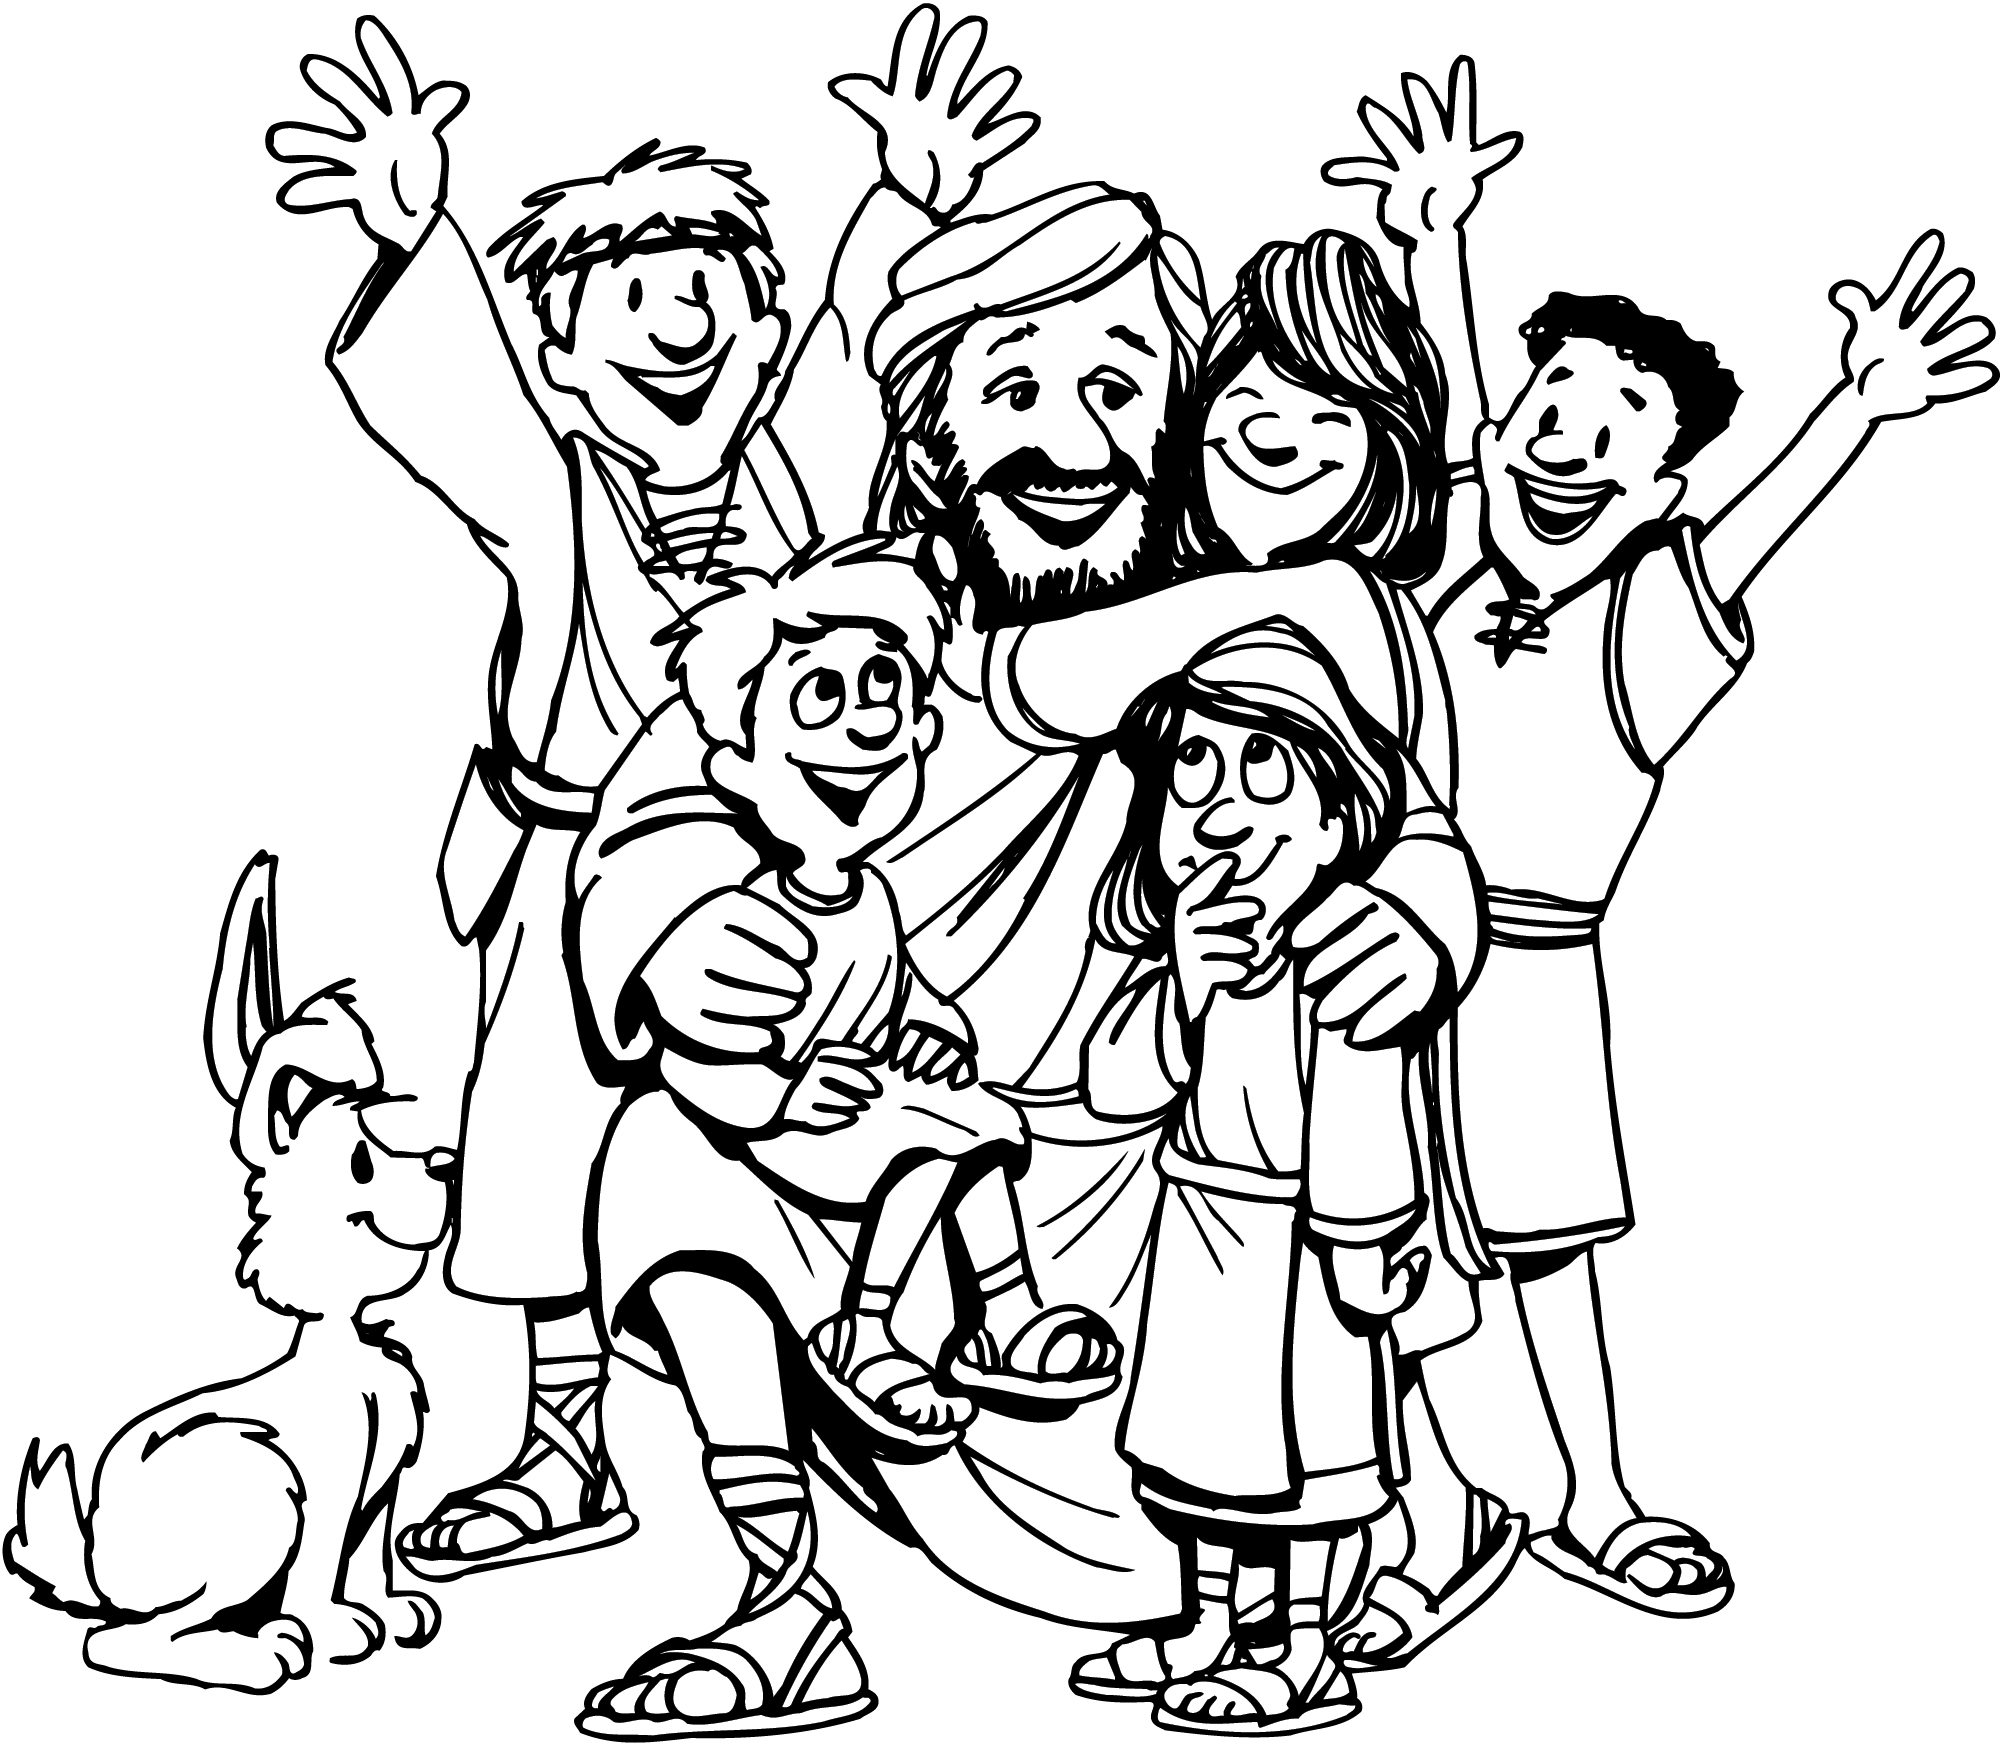 colouring pictures of jesus resurrection colouring pictures of jesus resurrection jesus pictures resurrection of colouring